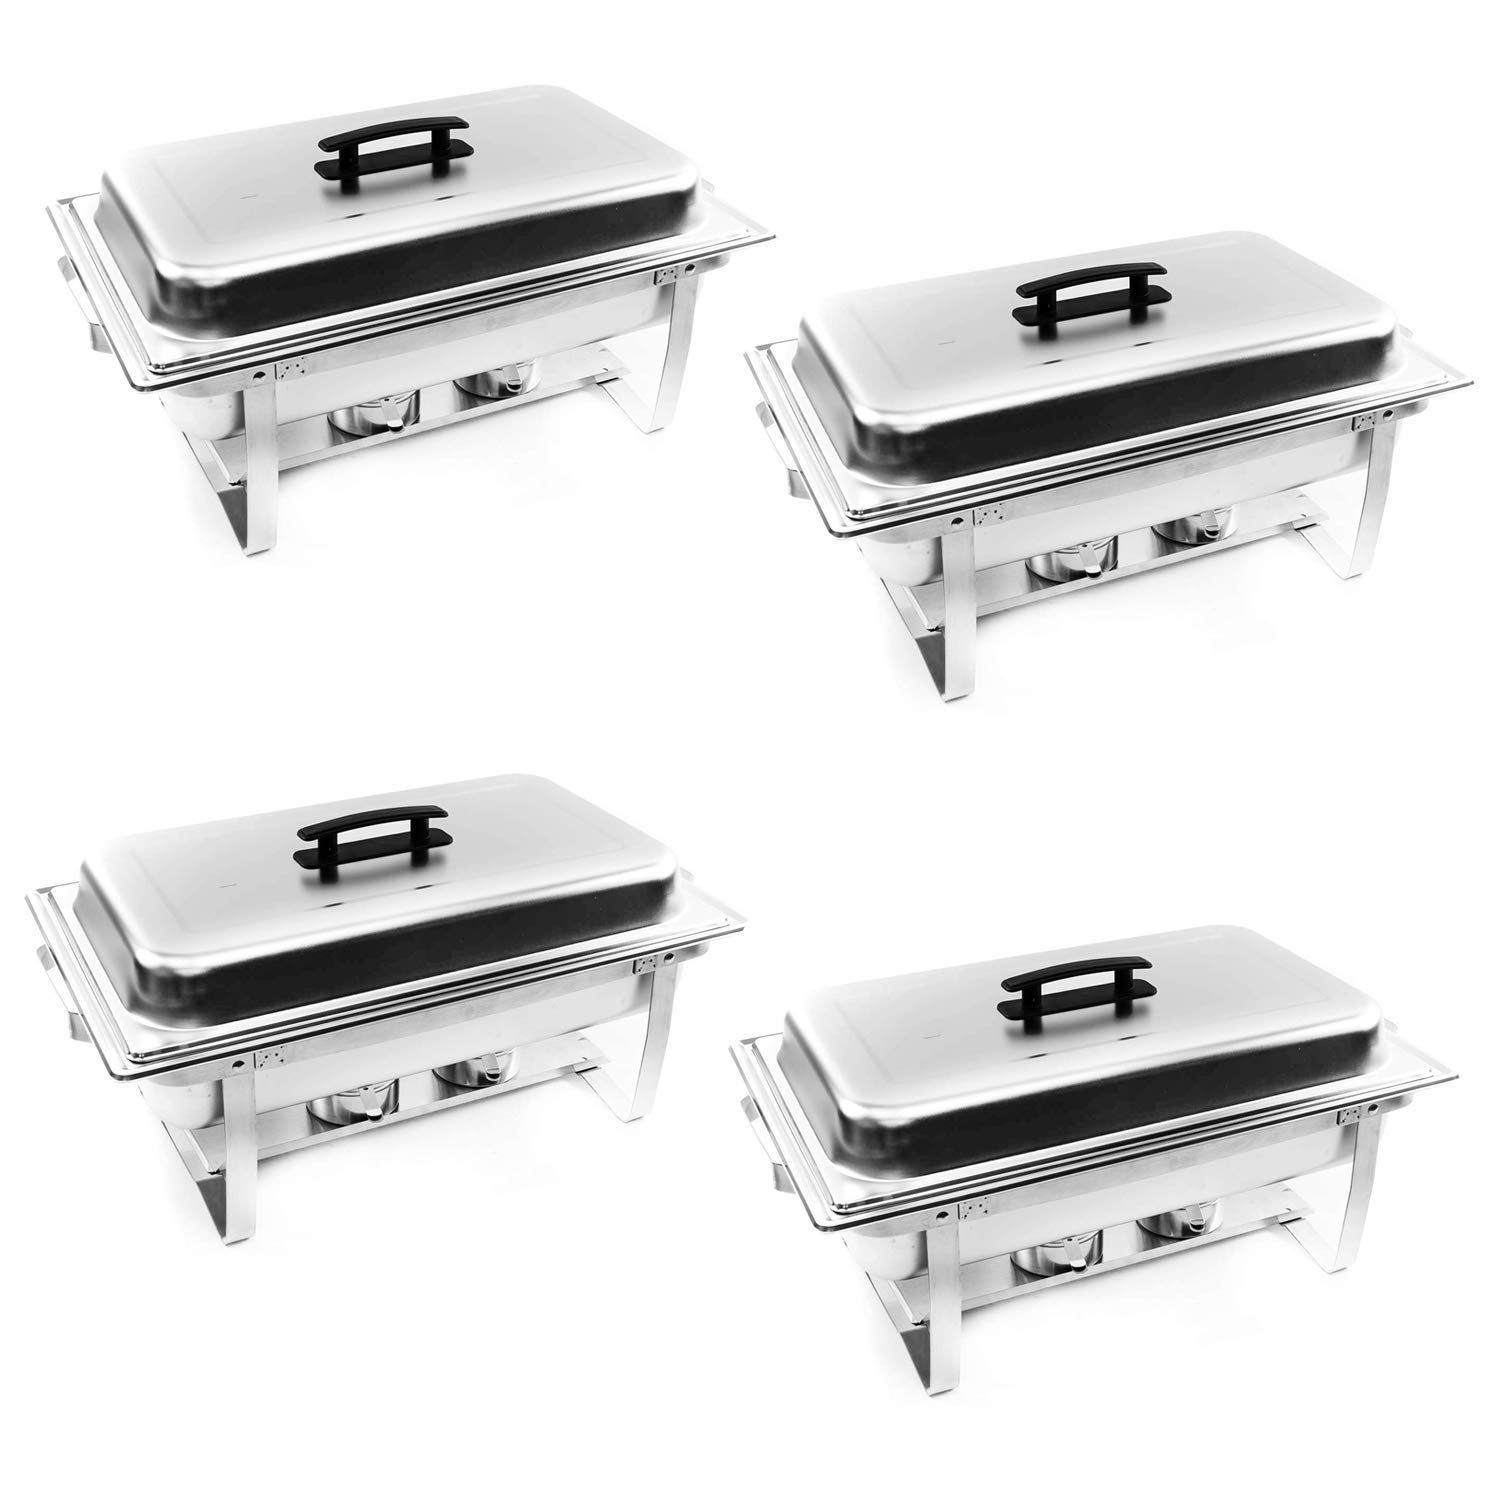 ALPHA LIVING 70014 4 Pack 8QT Chafing Dish High Grade Stainless Steel Chafer Complete Set, 8 QT,